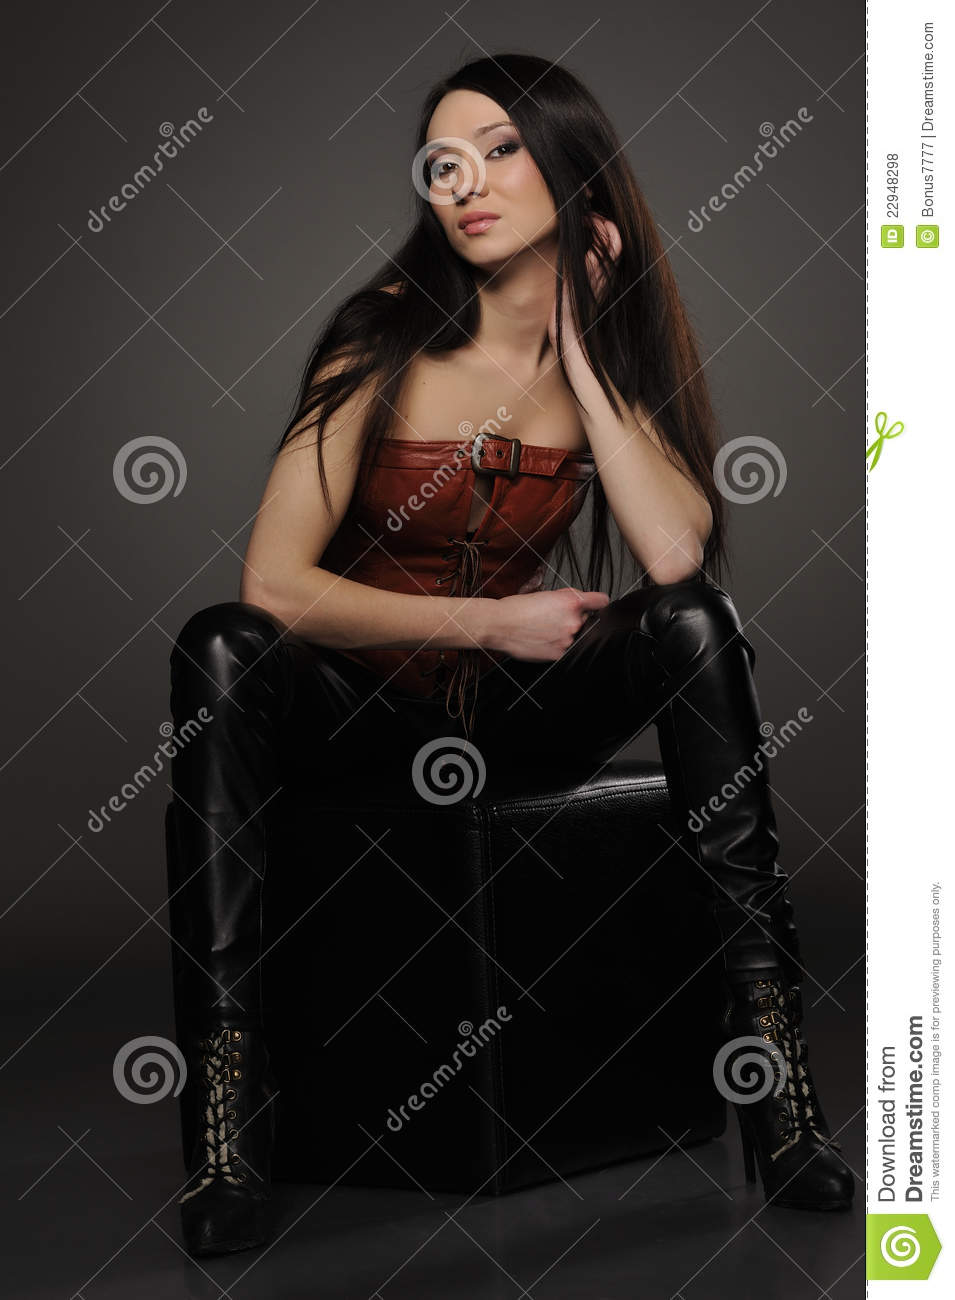 8aee6b27 Beautiful asian girl in leather pants and corset sitting on black cube